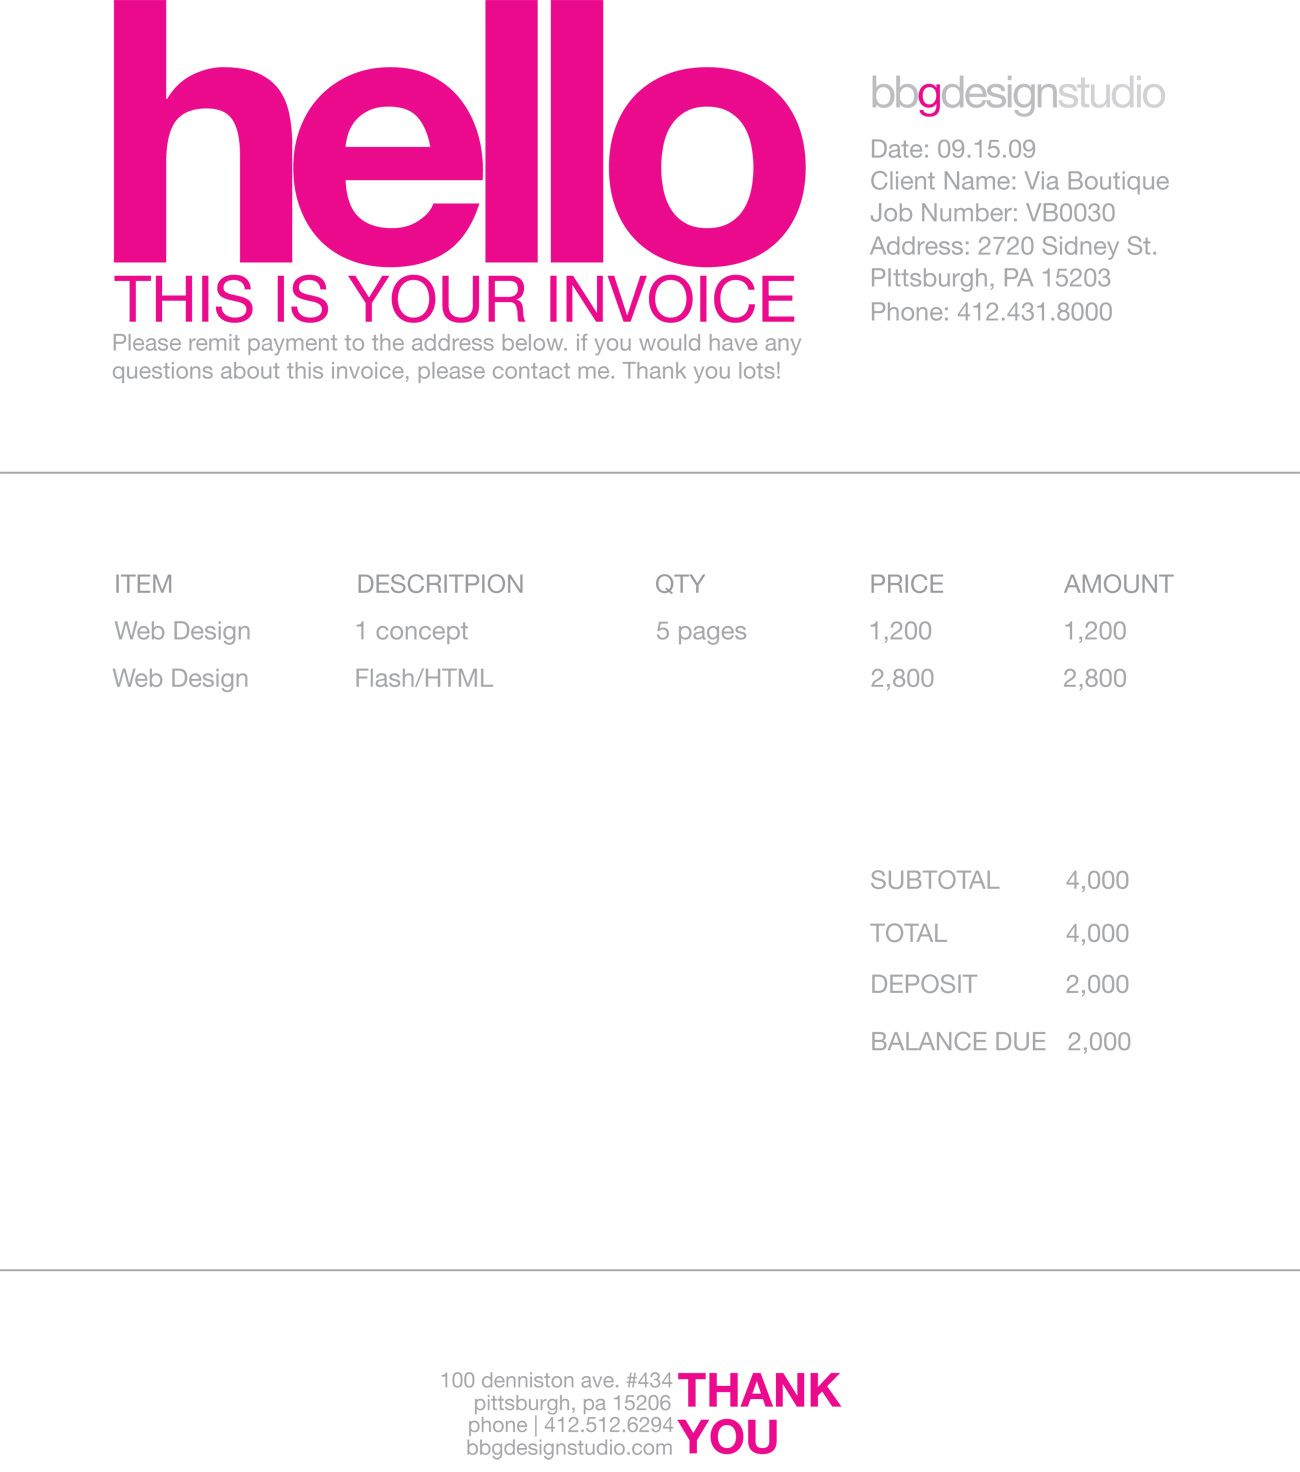 Adoringacklesus  Splendid  Images About Invoice Design On Pinterest With Heavenly Parking Invoice Besides Blank Proforma Invoice Template Furthermore Gmc Invoice Pricing With Charming Invoice Software Torrent Also Invoice Quotation In Addition Invoice Template Word  Free Download And Uk Invoice Template Excel As Well As Free Download Invoice Software Additionally Expenses Invoice From Pinterestcom With Adoringacklesus  Heavenly  Images About Invoice Design On Pinterest With Charming Parking Invoice Besides Blank Proforma Invoice Template Furthermore Gmc Invoice Pricing And Splendid Invoice Software Torrent Also Invoice Quotation In Addition Invoice Template Word  Free Download From Pinterestcom